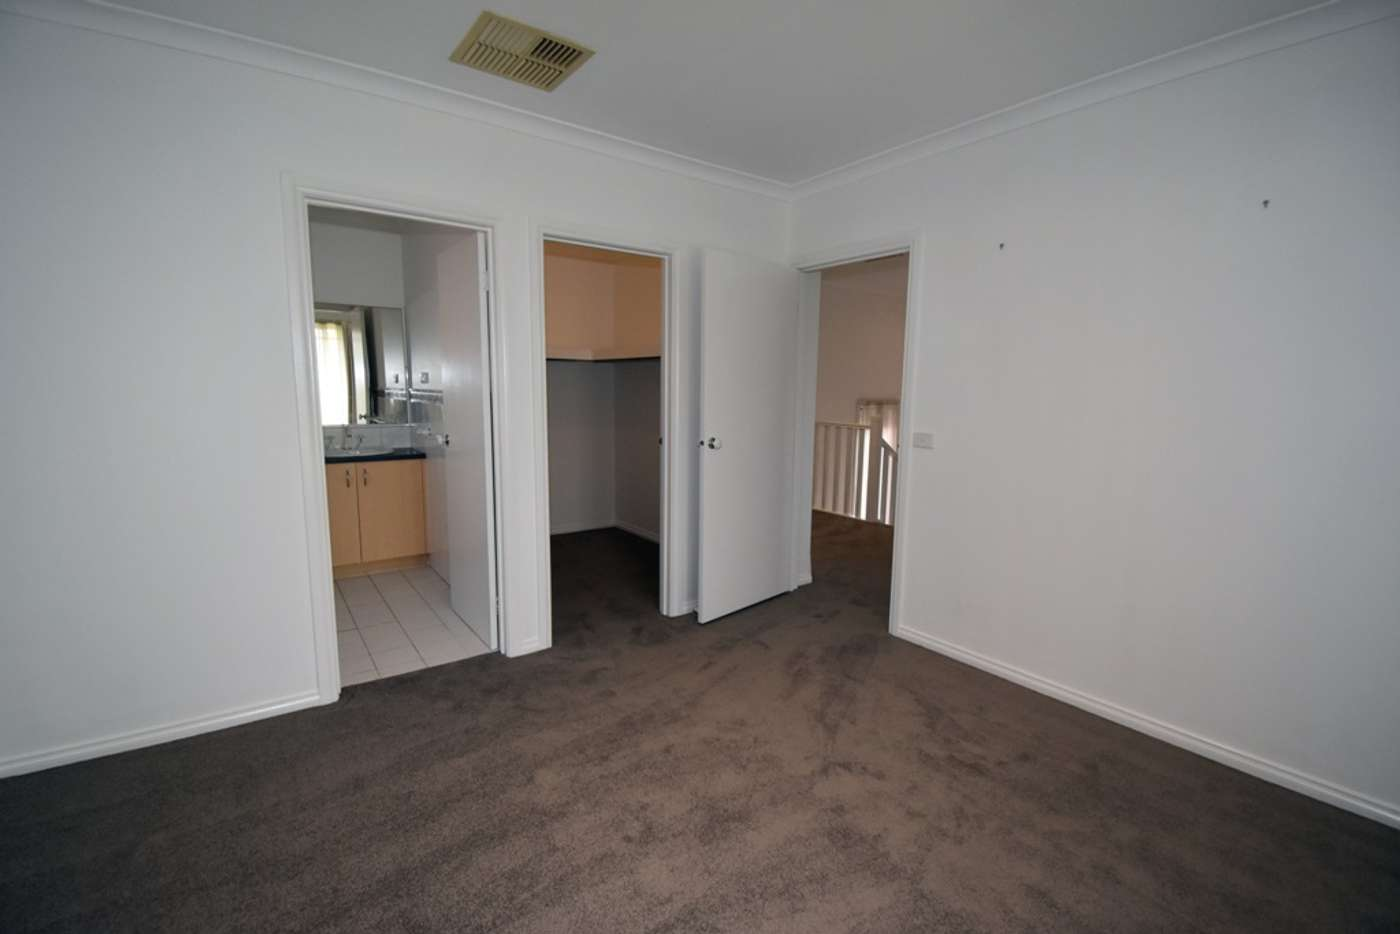 Sixth view of Homely townhouse listing, 1/12 Bleazby Street, Bentleigh VIC 3204